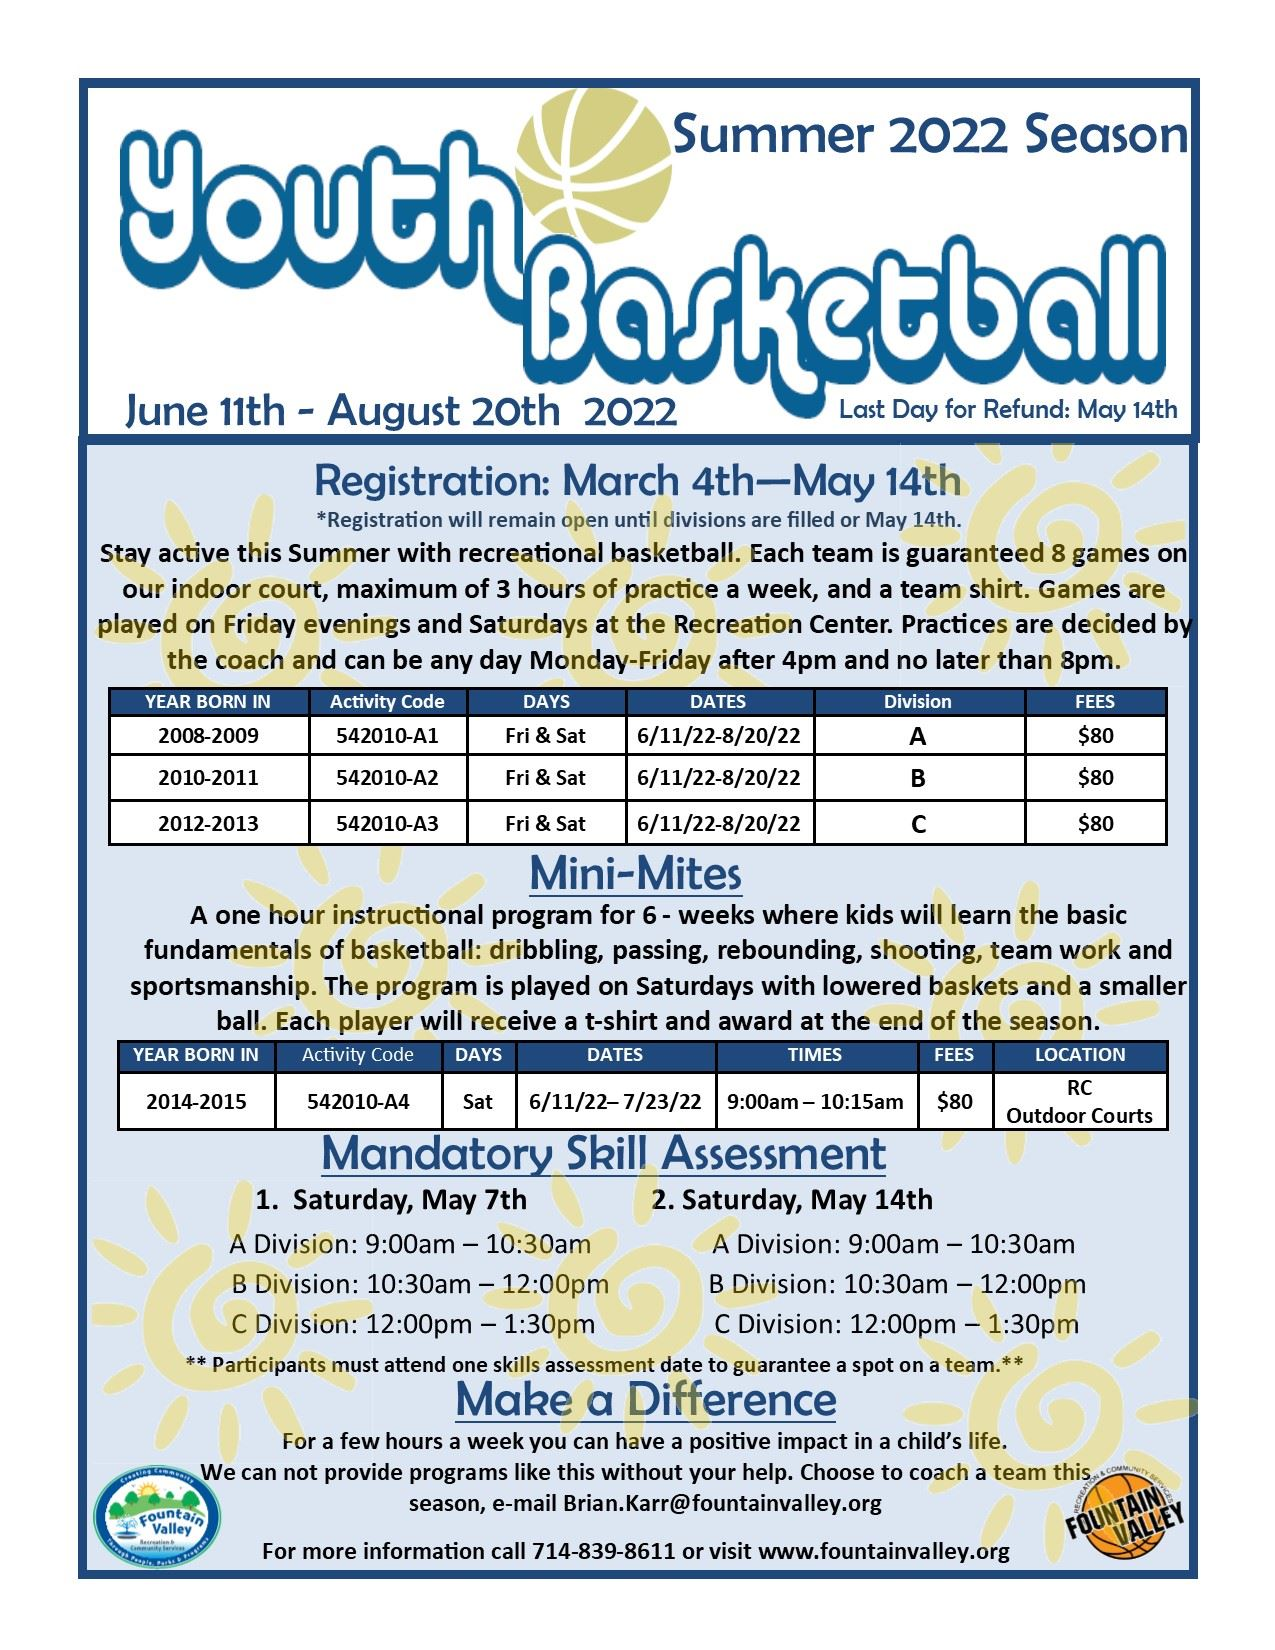 Winter Youth Basketball